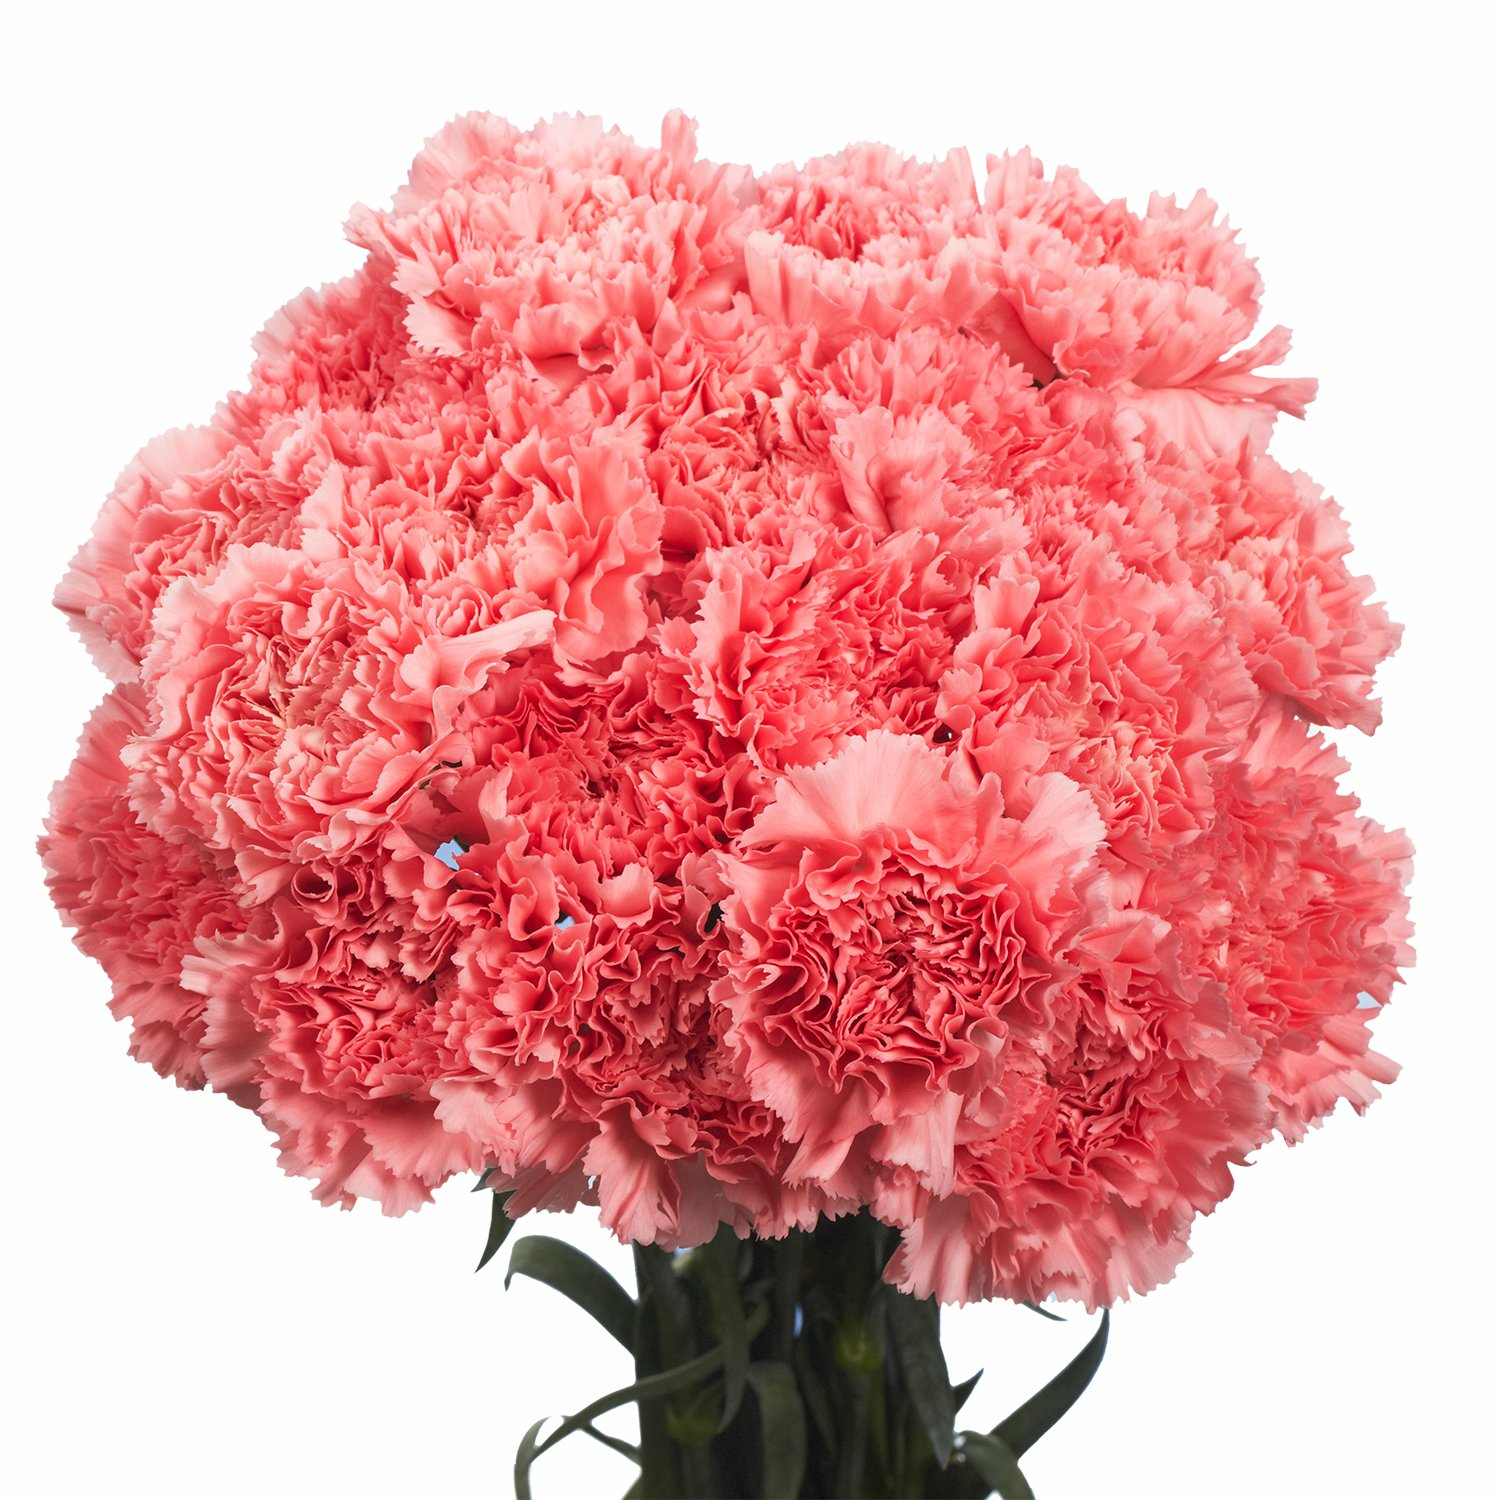 GlobalRose Pink Carnations- 100 Fresh Cut Flowers by GlobalRose